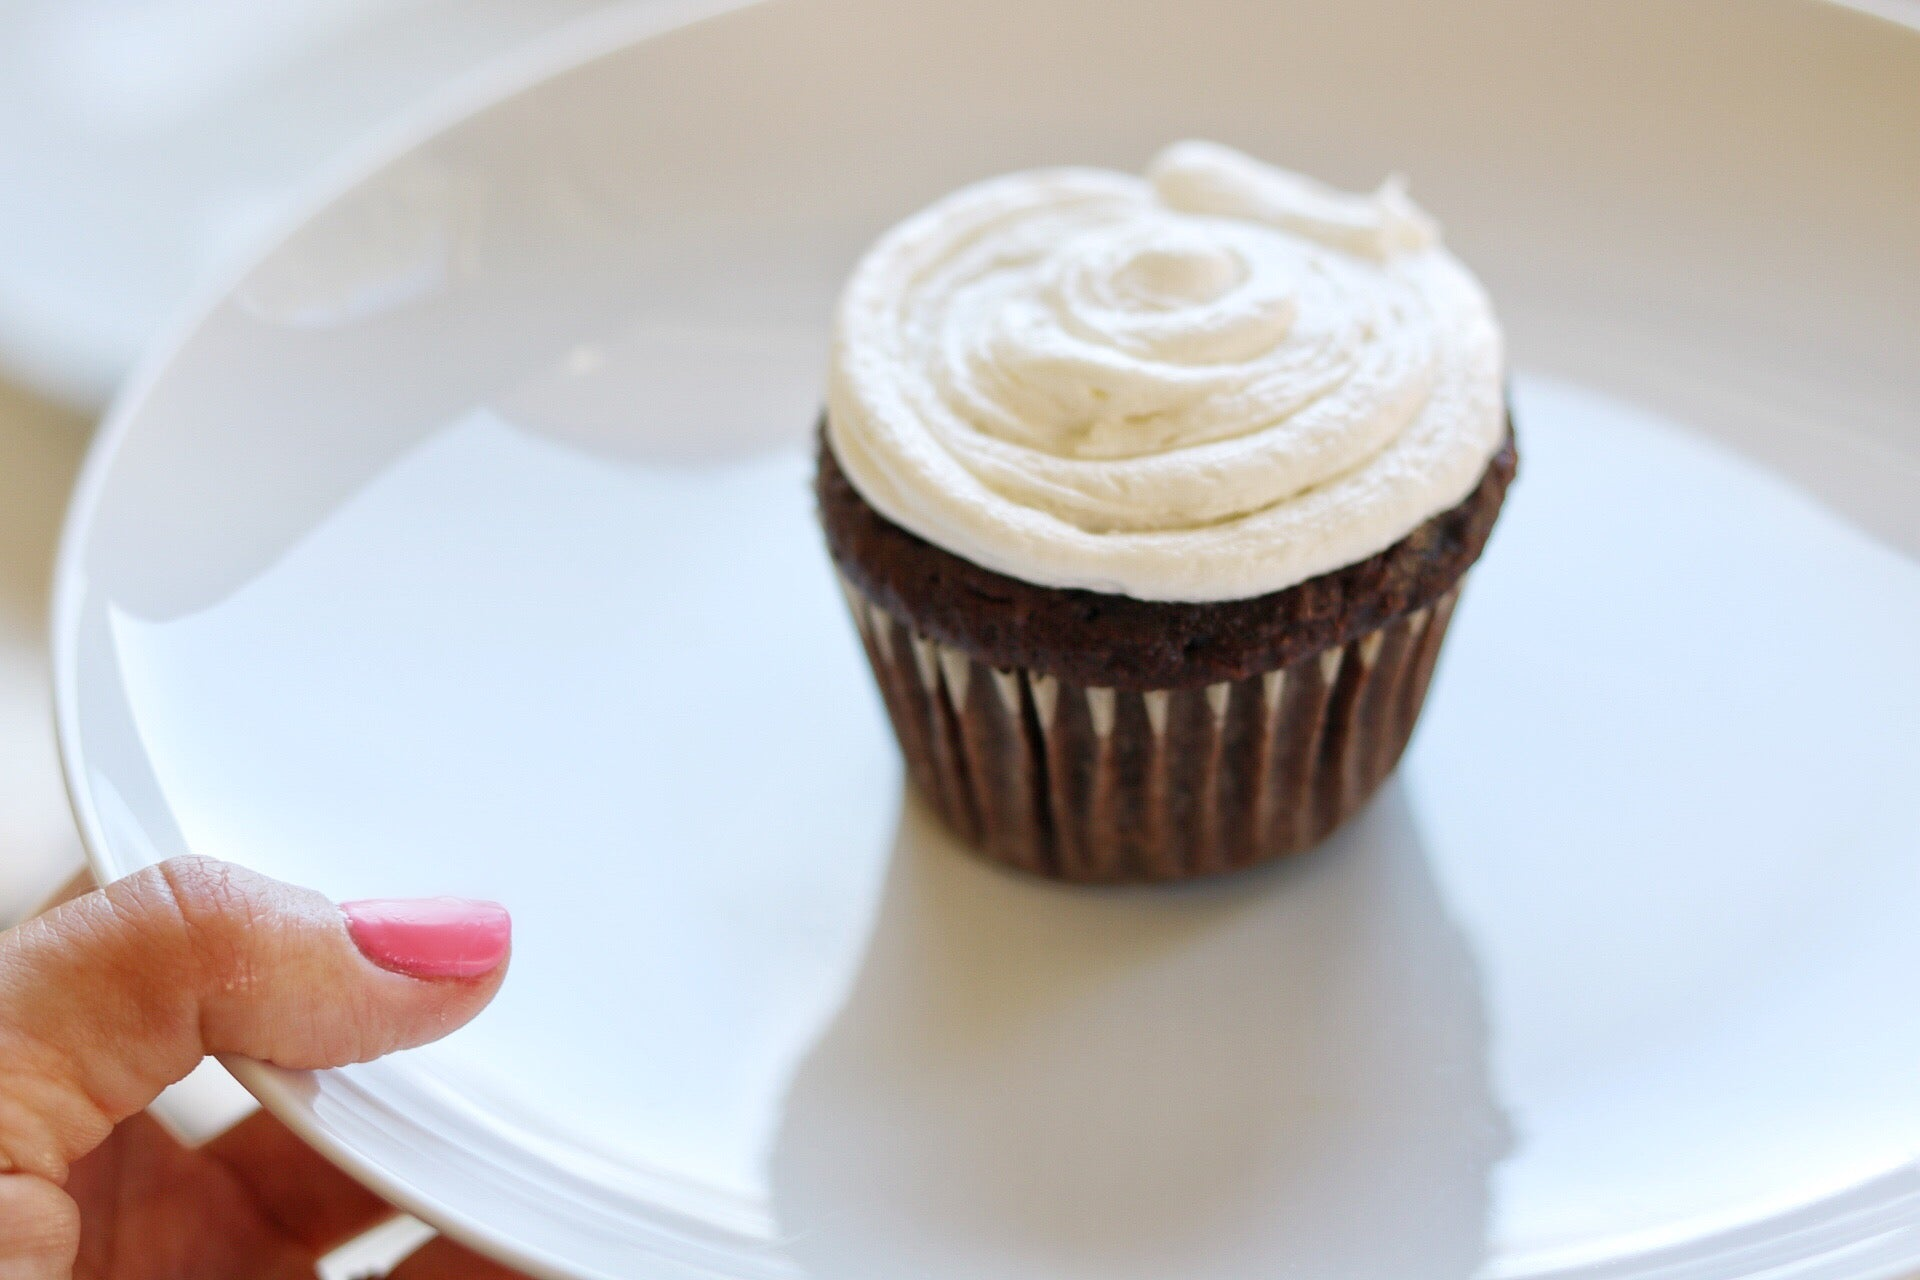 freshly baked chocolate cupcake with marshmallow frosting